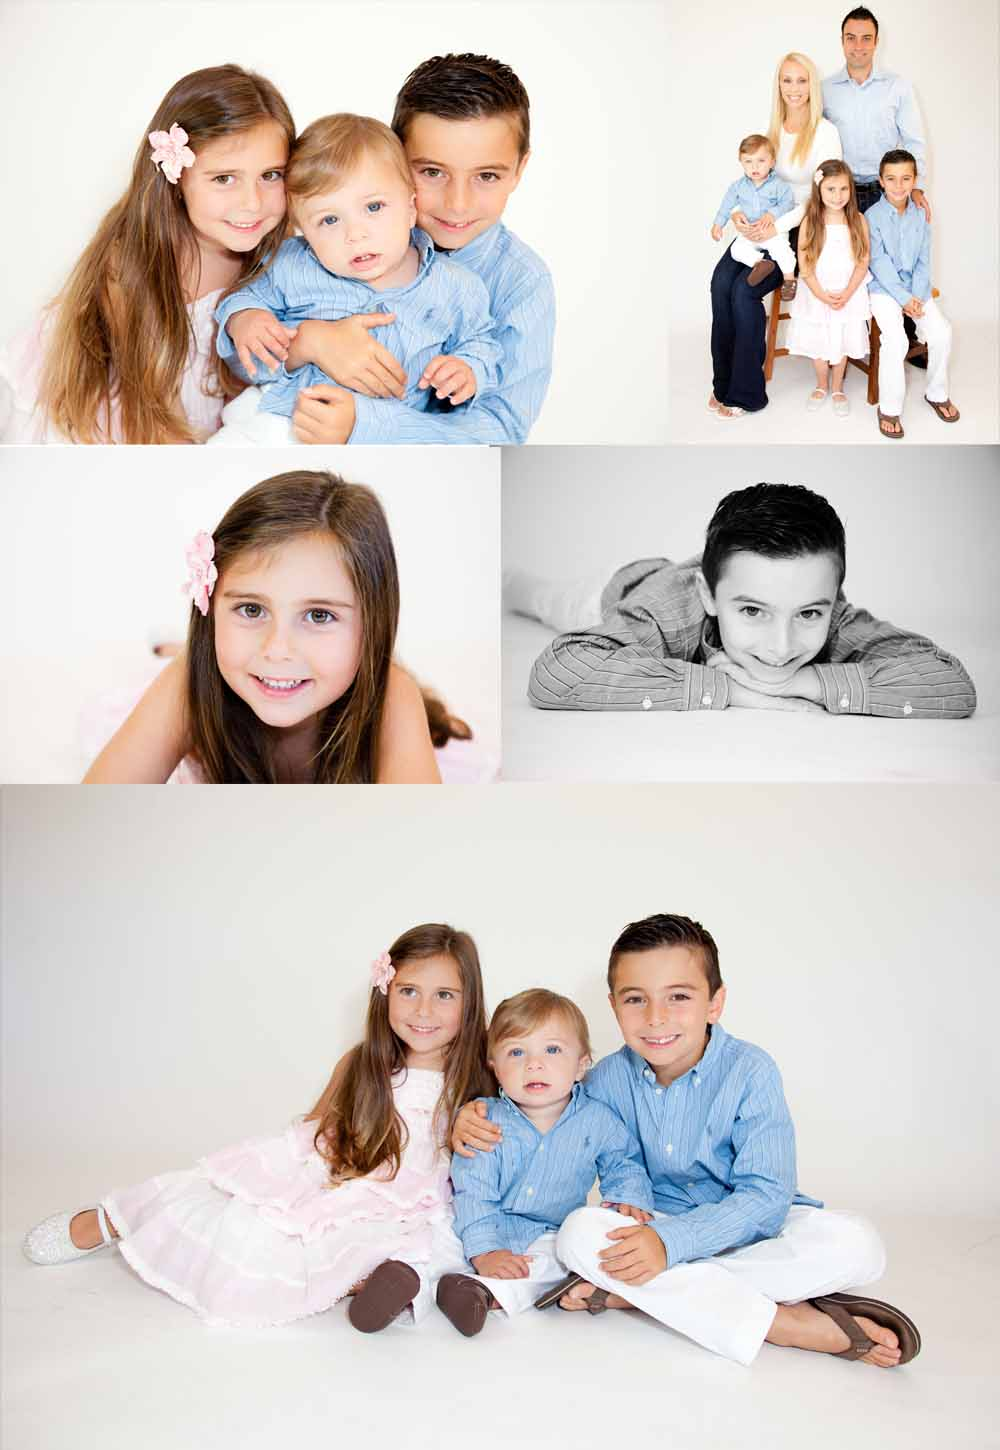 Fun Family Poses http://katrinekrugerphotography.blogspot.com/2010/09/in-studio-family-portraits-santa-cruz.html